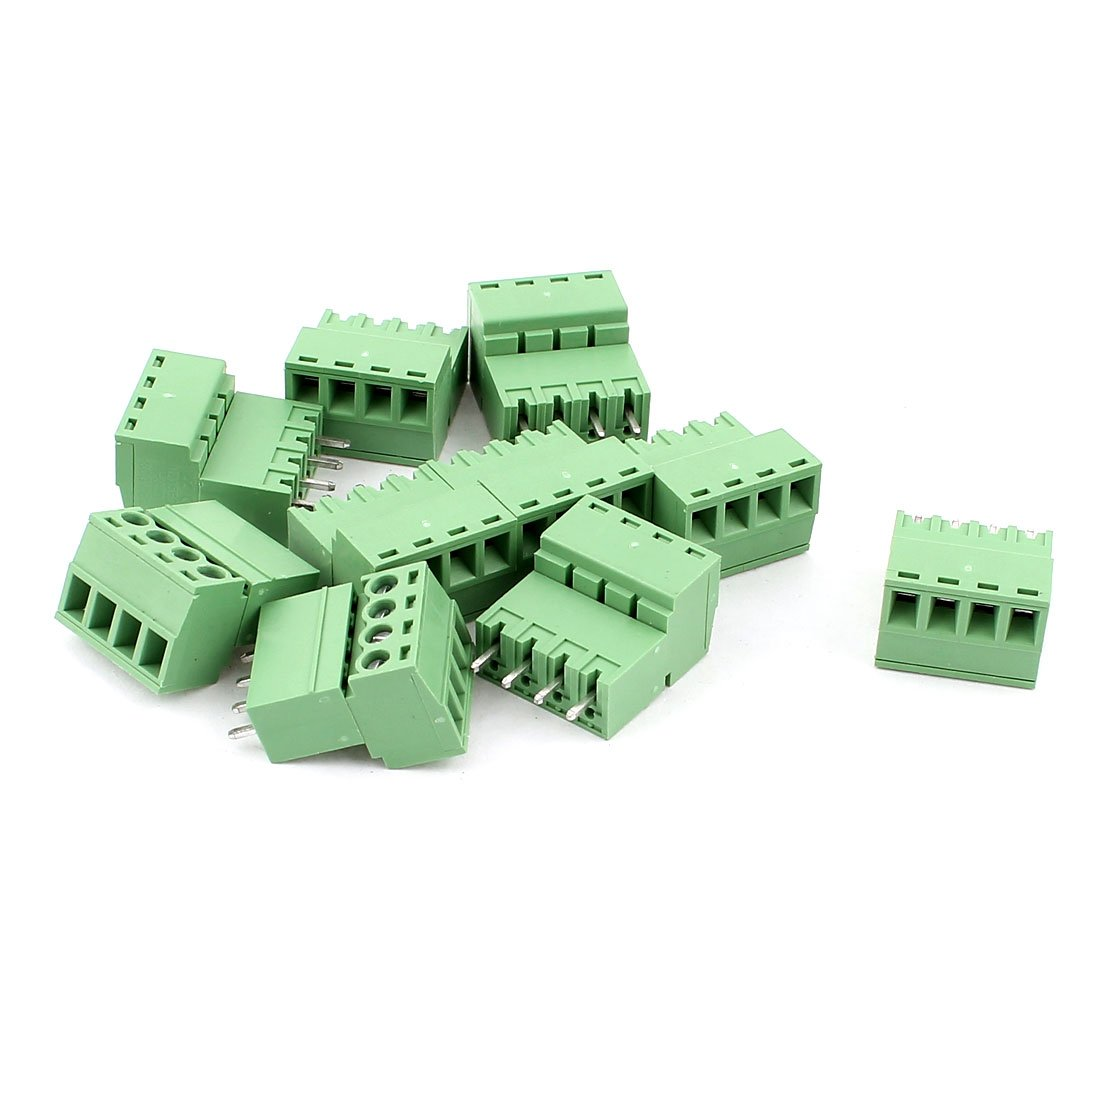 uxcell 10 Pcs AC 300V 10A 4 Pins PCB Terminal Block Connector 5.08mm Pitch Green